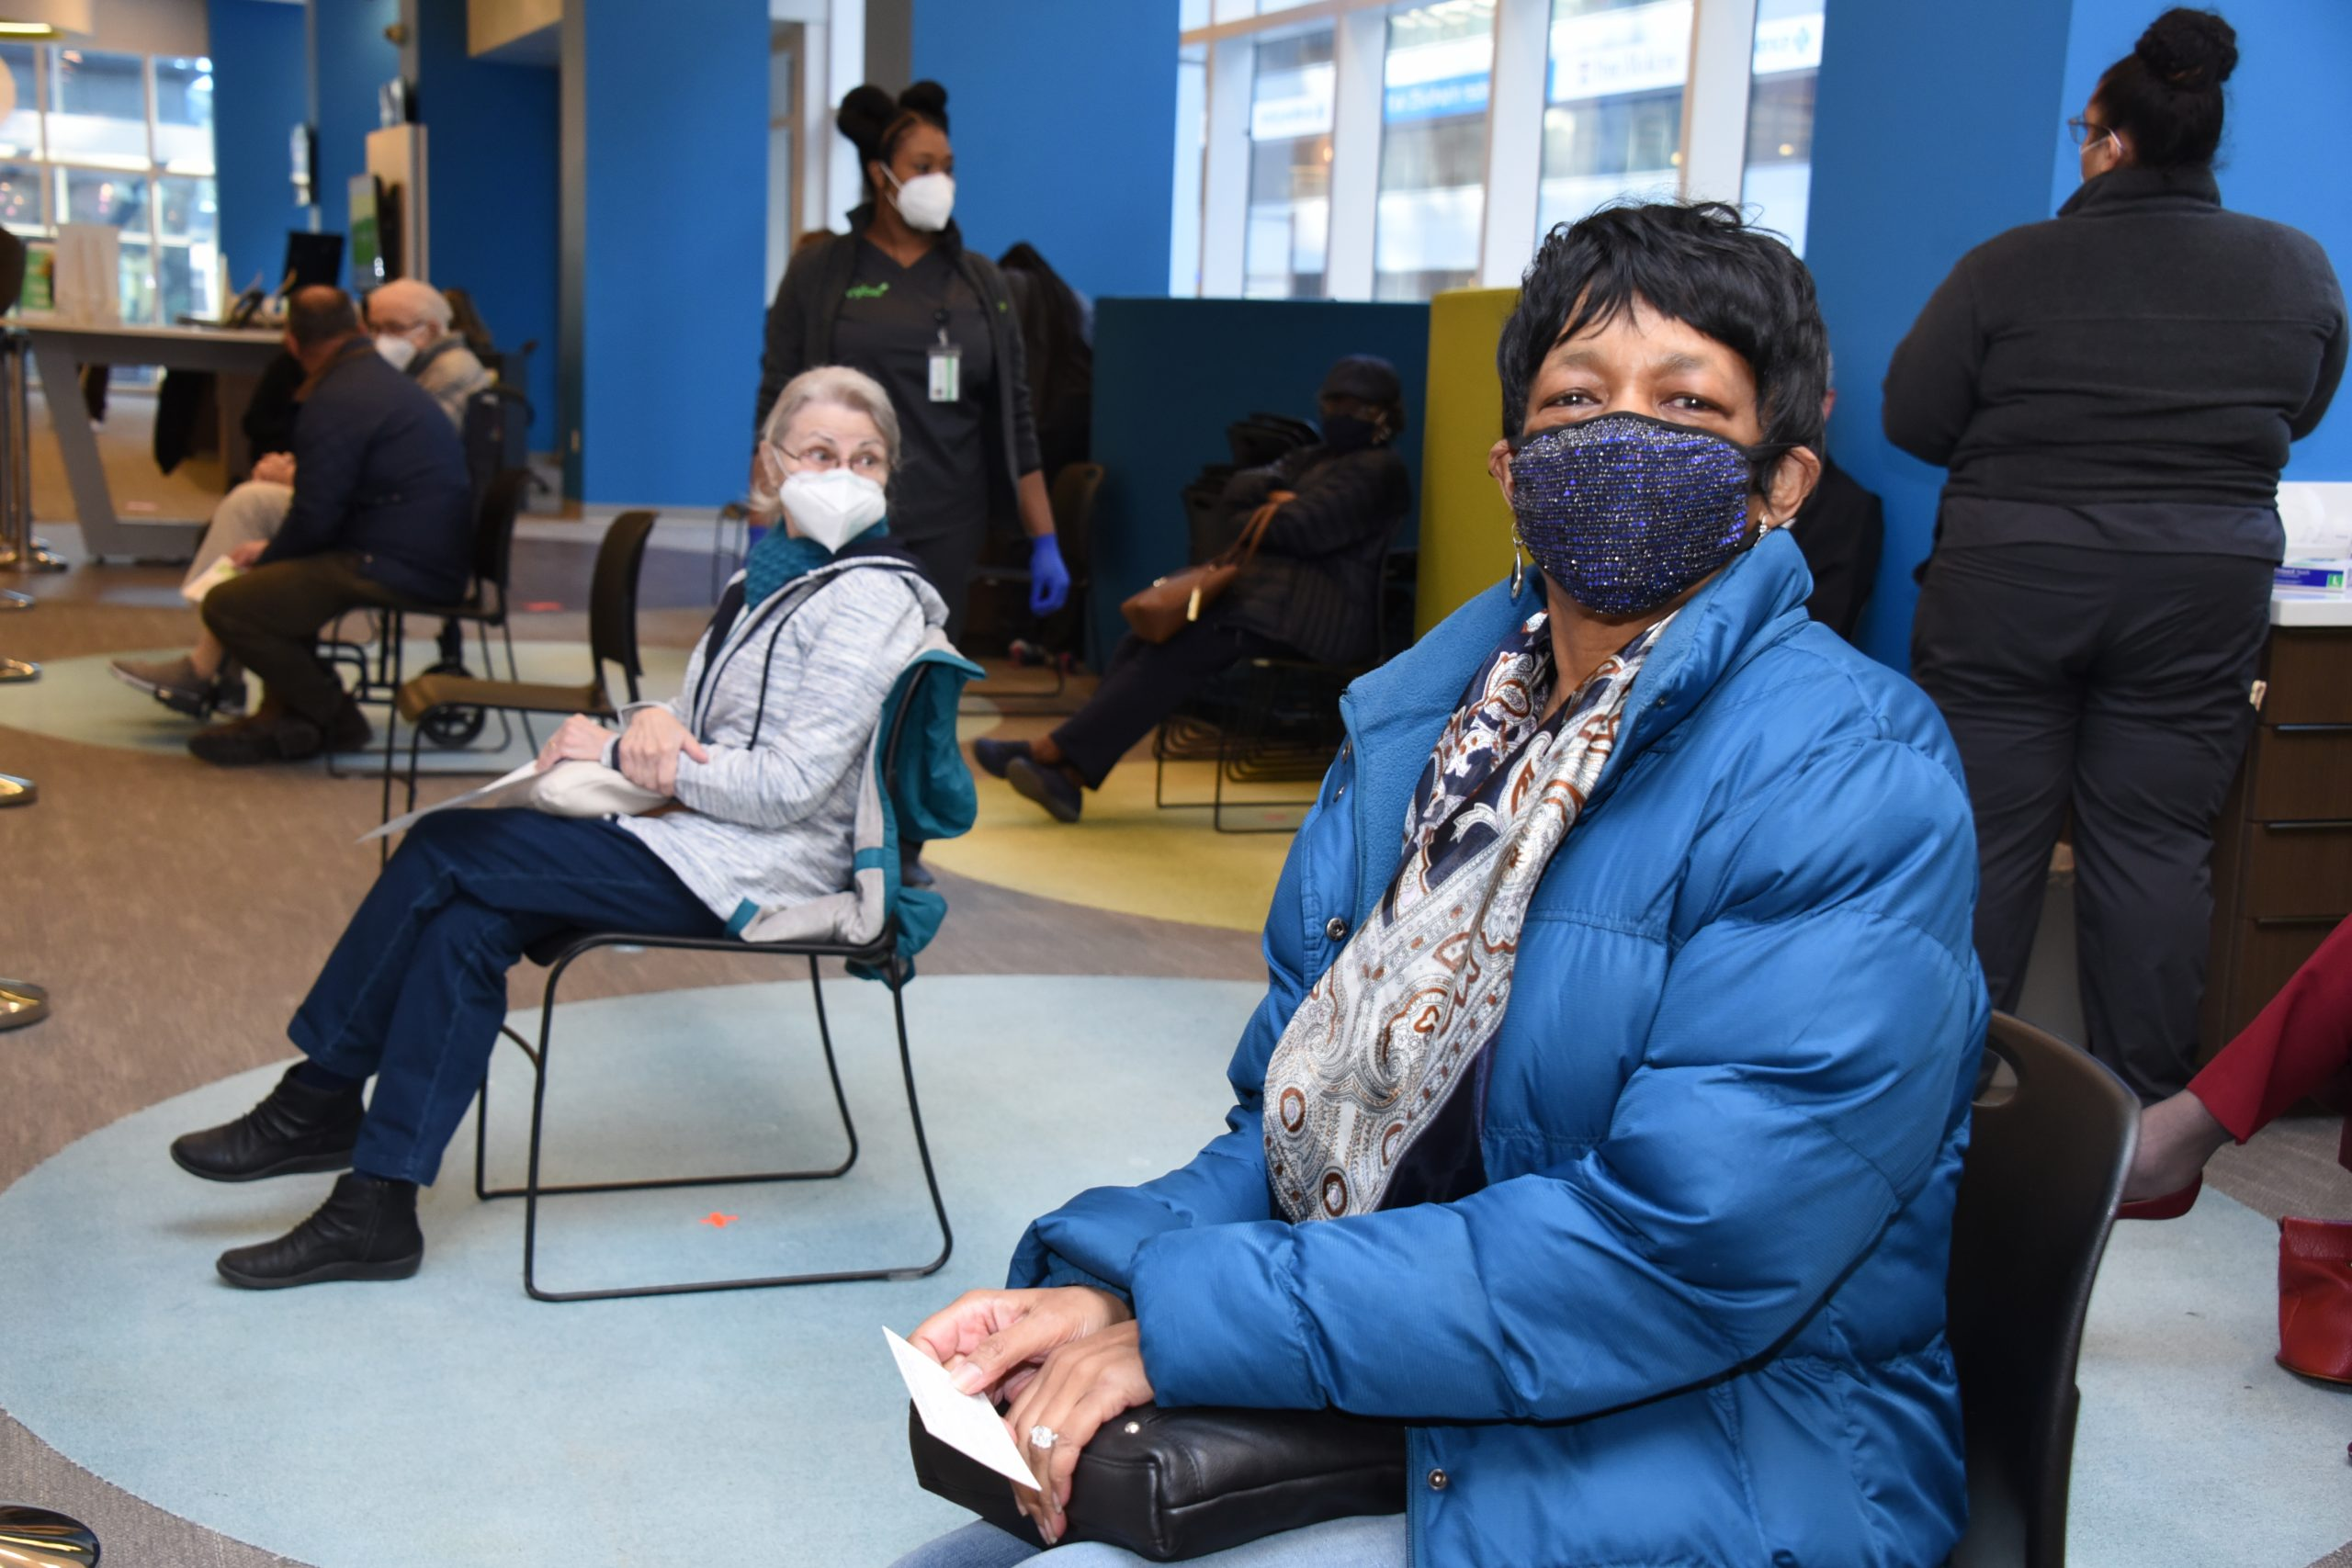 Philadelphia resident in mask smiles at camera while waiting for her COVID-19 at Independence LIVE